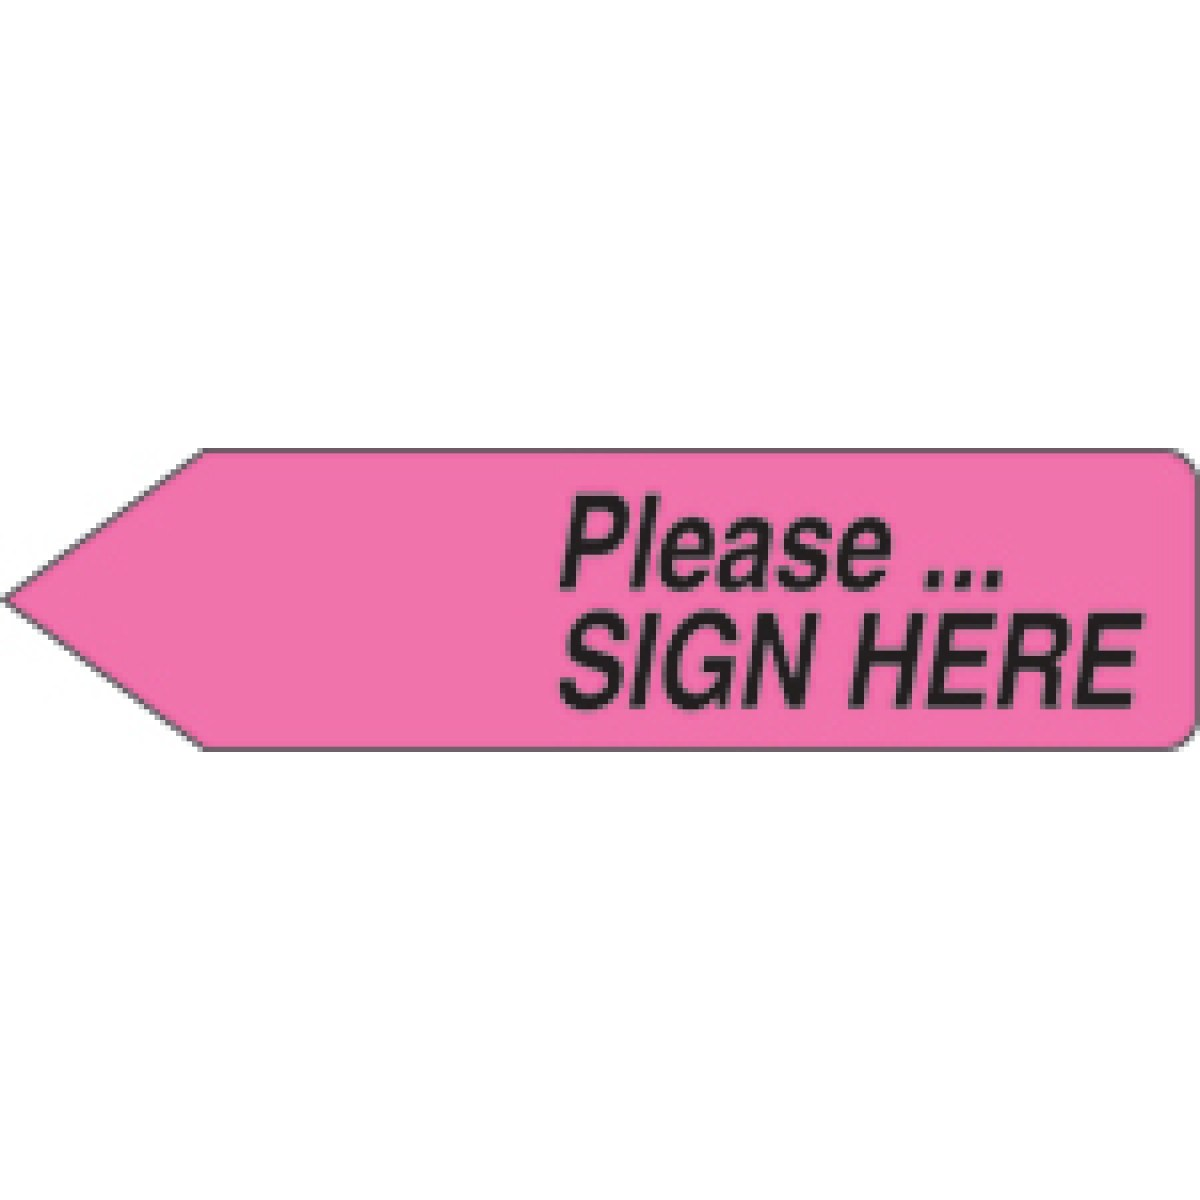 Please sign here clipart 4 » Clipart Portal.